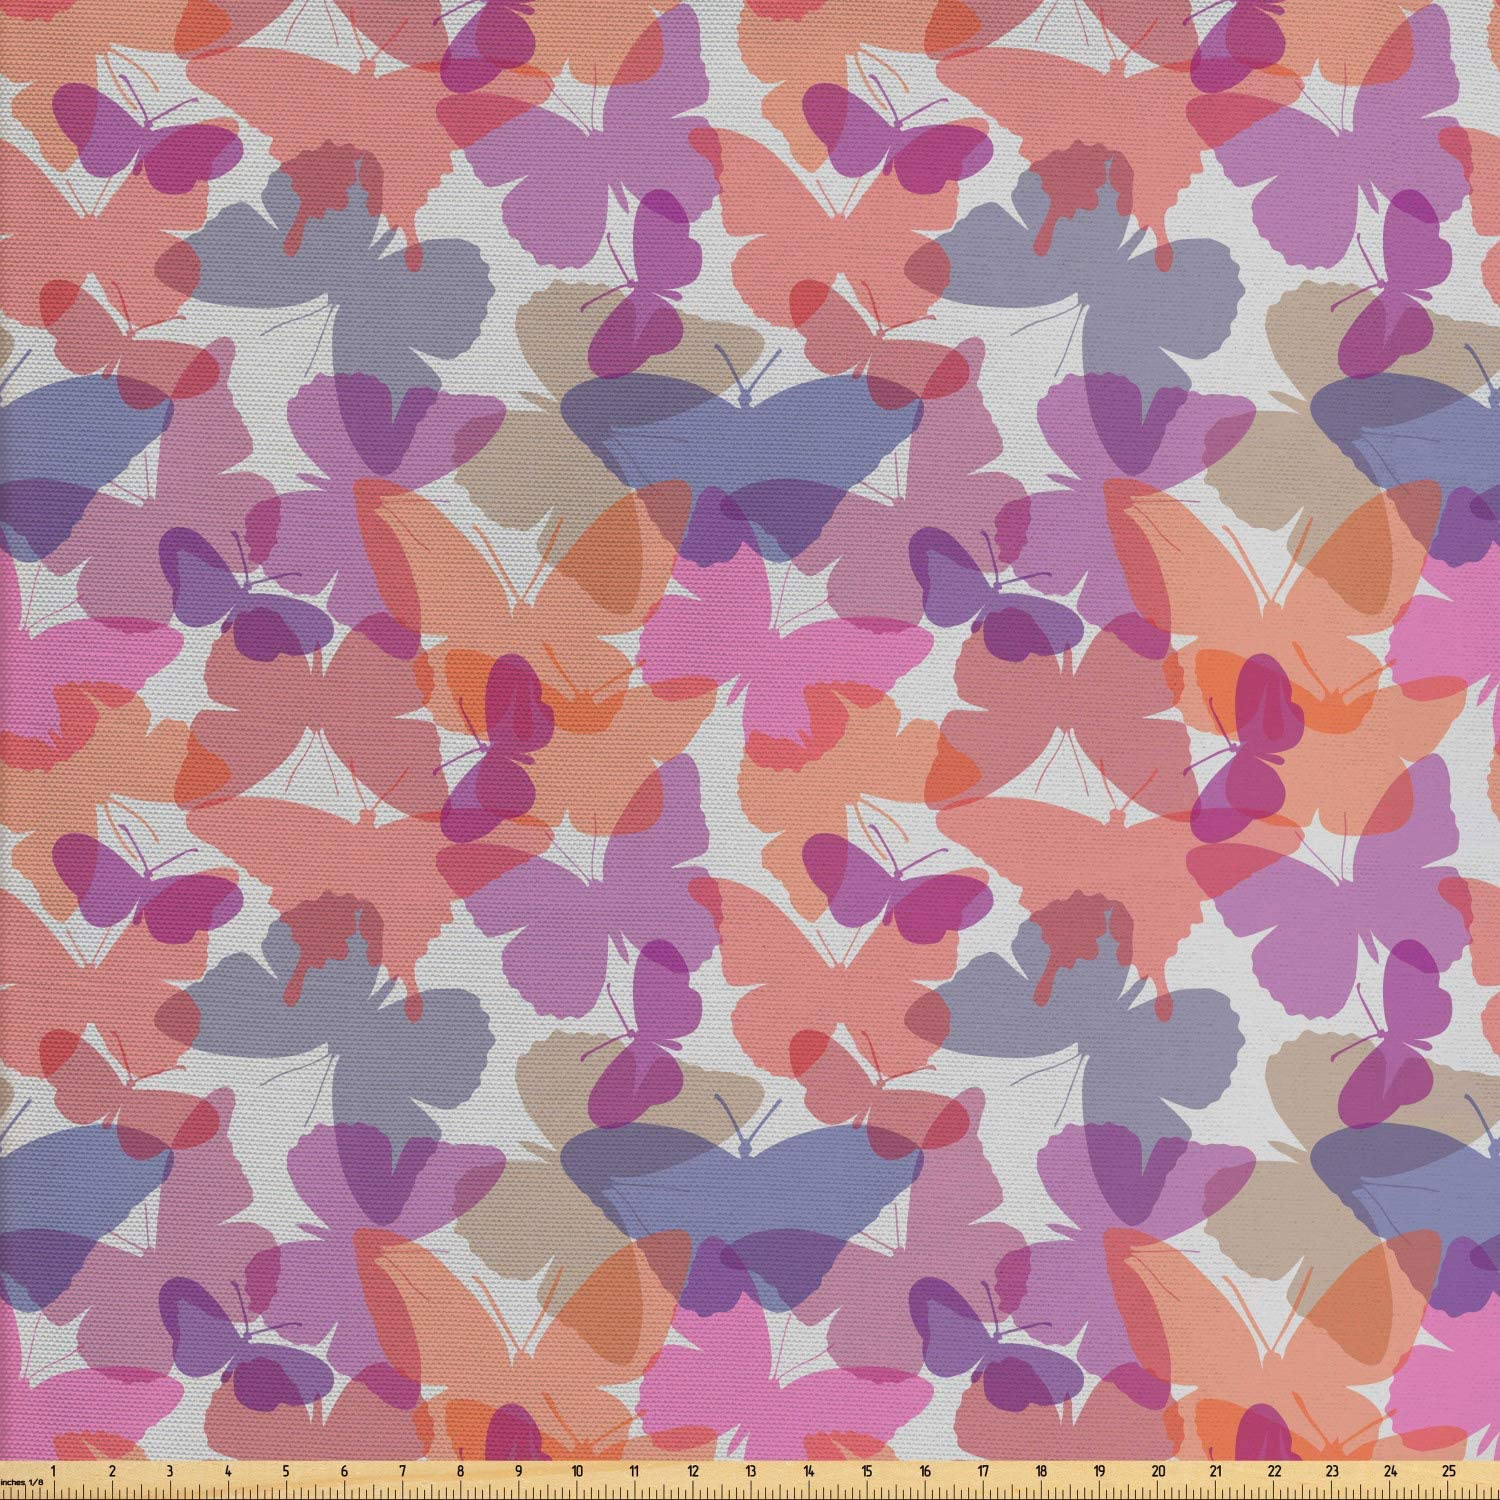 Ambesonne Muted Colors Fabric by The Yard, Charming Layout of Butterfly Silhouettes in Different Shades, Decorative Fabric for Upholstery and Home Accents, 1 Yard, Pale Grey and Multicolor